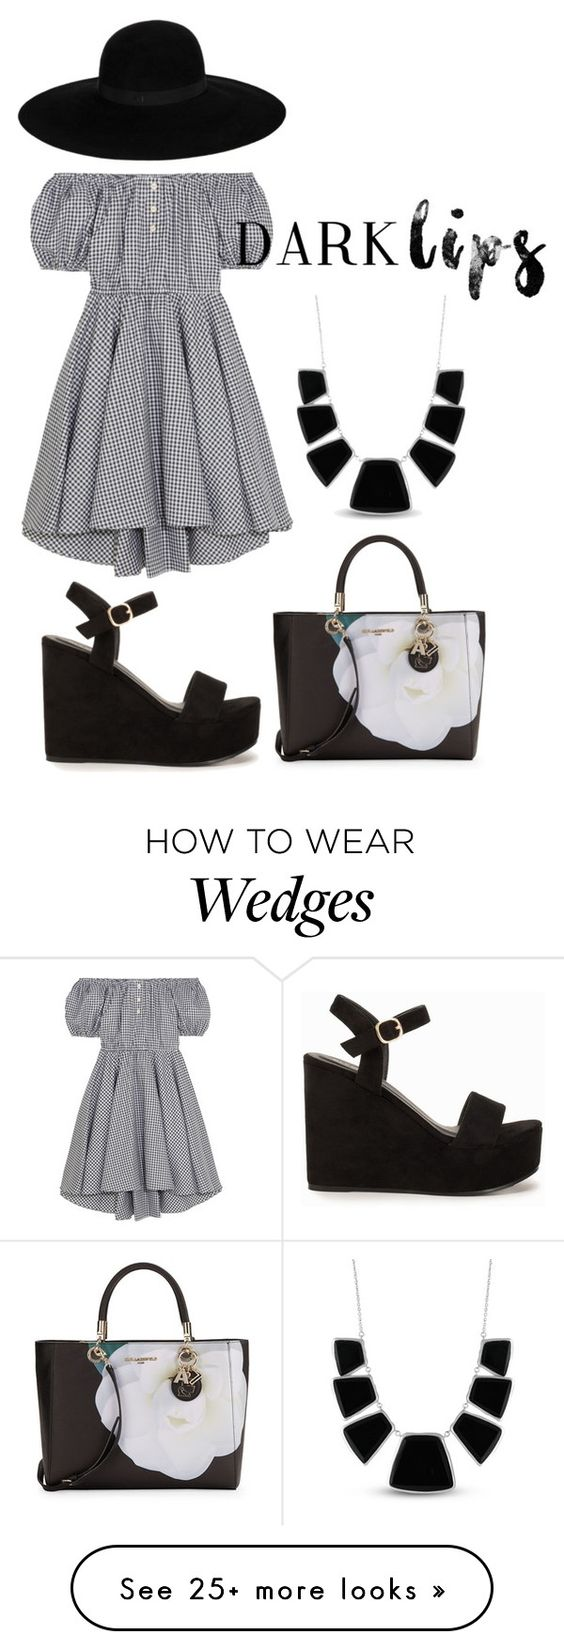 """""""fgfhfc by nana"""" by zozanazozane on Polyvore featuring Caroline Constas, Nly Shoes, Karl Lagerfeld, Maison Michel and Karen Kane"""